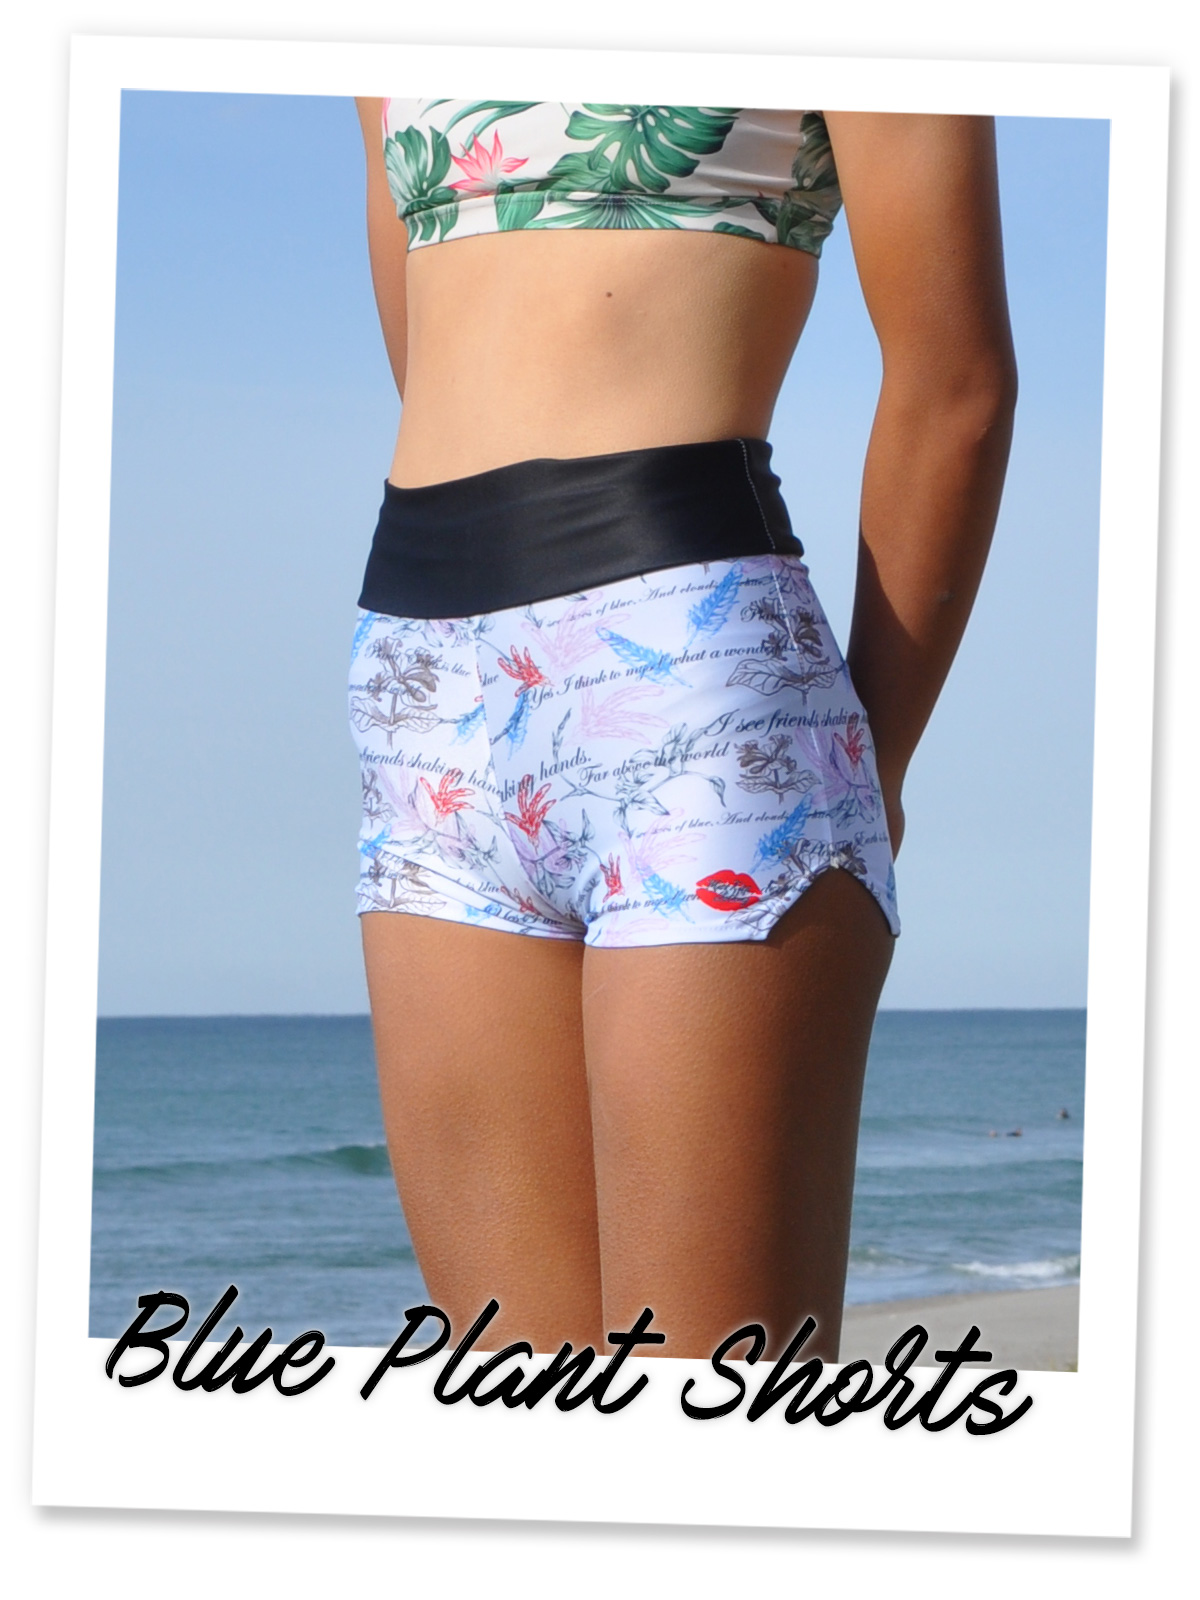 Blue Plant Shorts(BPS)